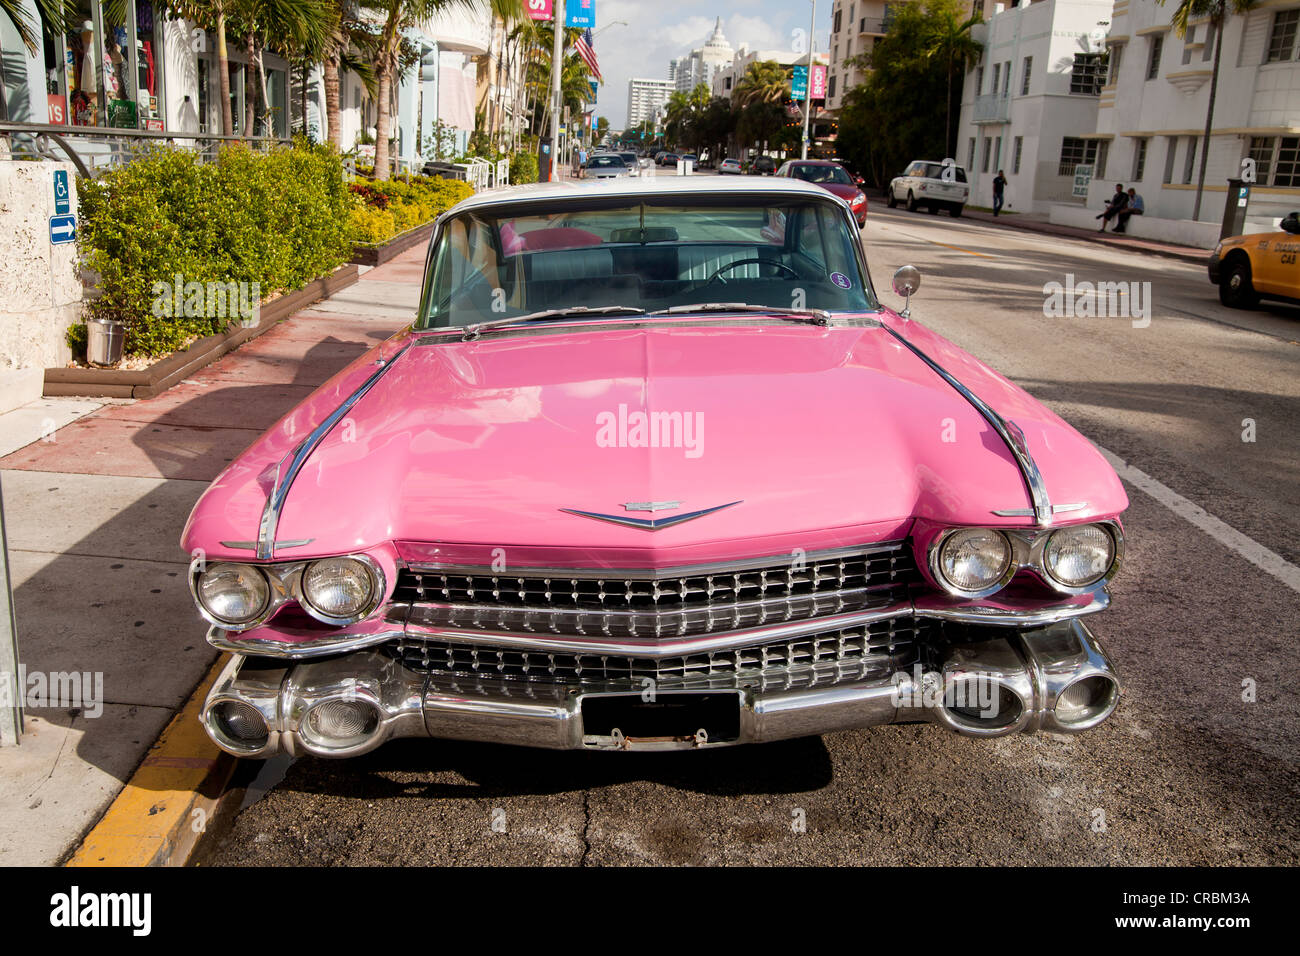 Pink Cadillac in the Art Deco district of South Beach, Miami, Florida, USA - Stock Image